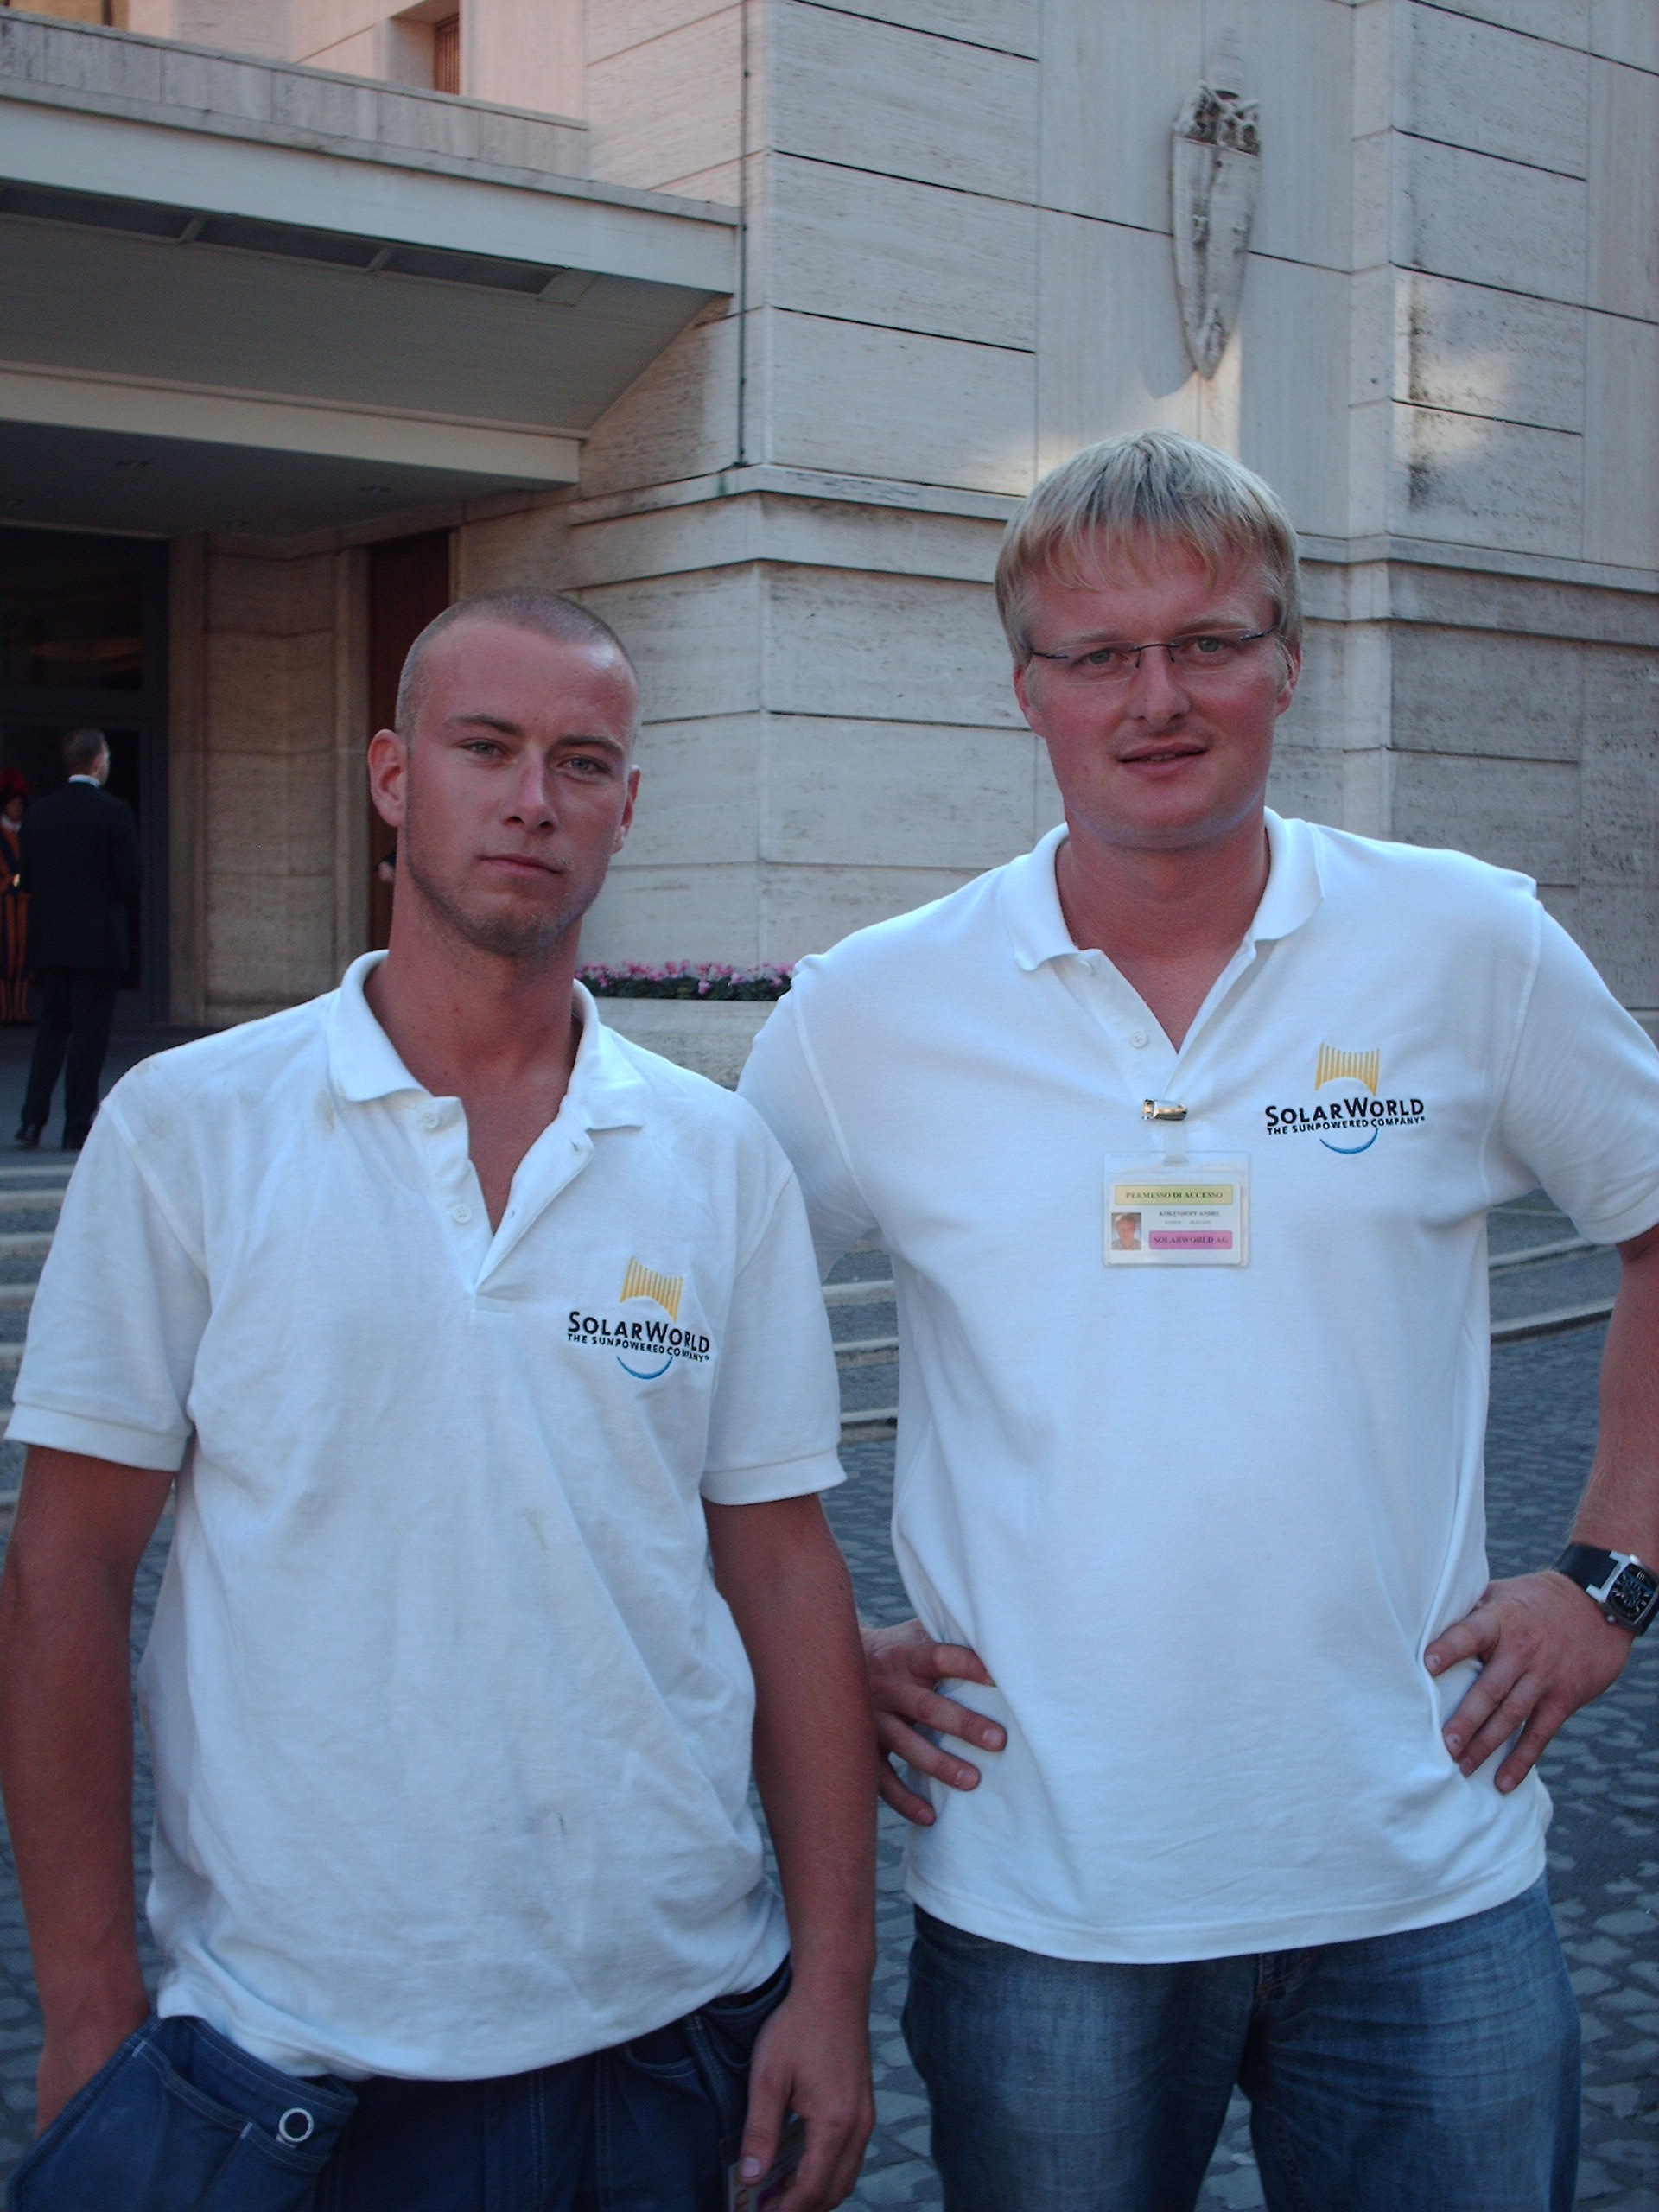 Andre Koekenhoff (right) with Thermovolt co-worker